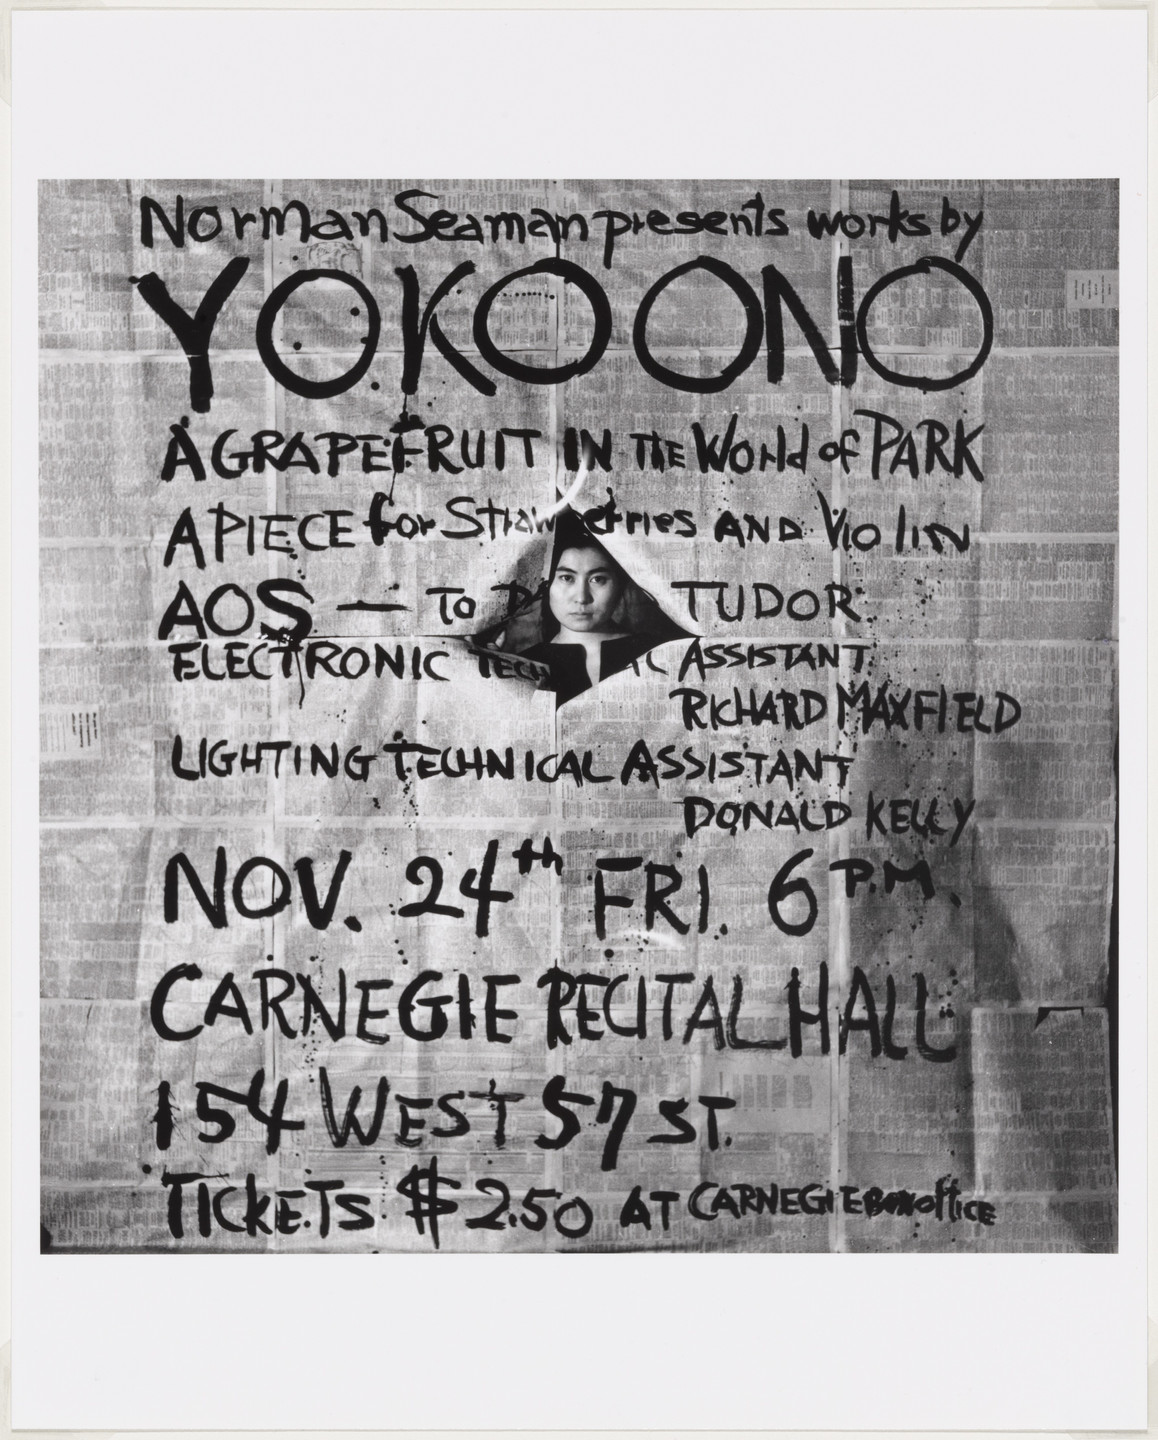 George Maciunas. Poster for Works by Yoko Ono, Carnegie Recital Hall, New York, 1961. 1961